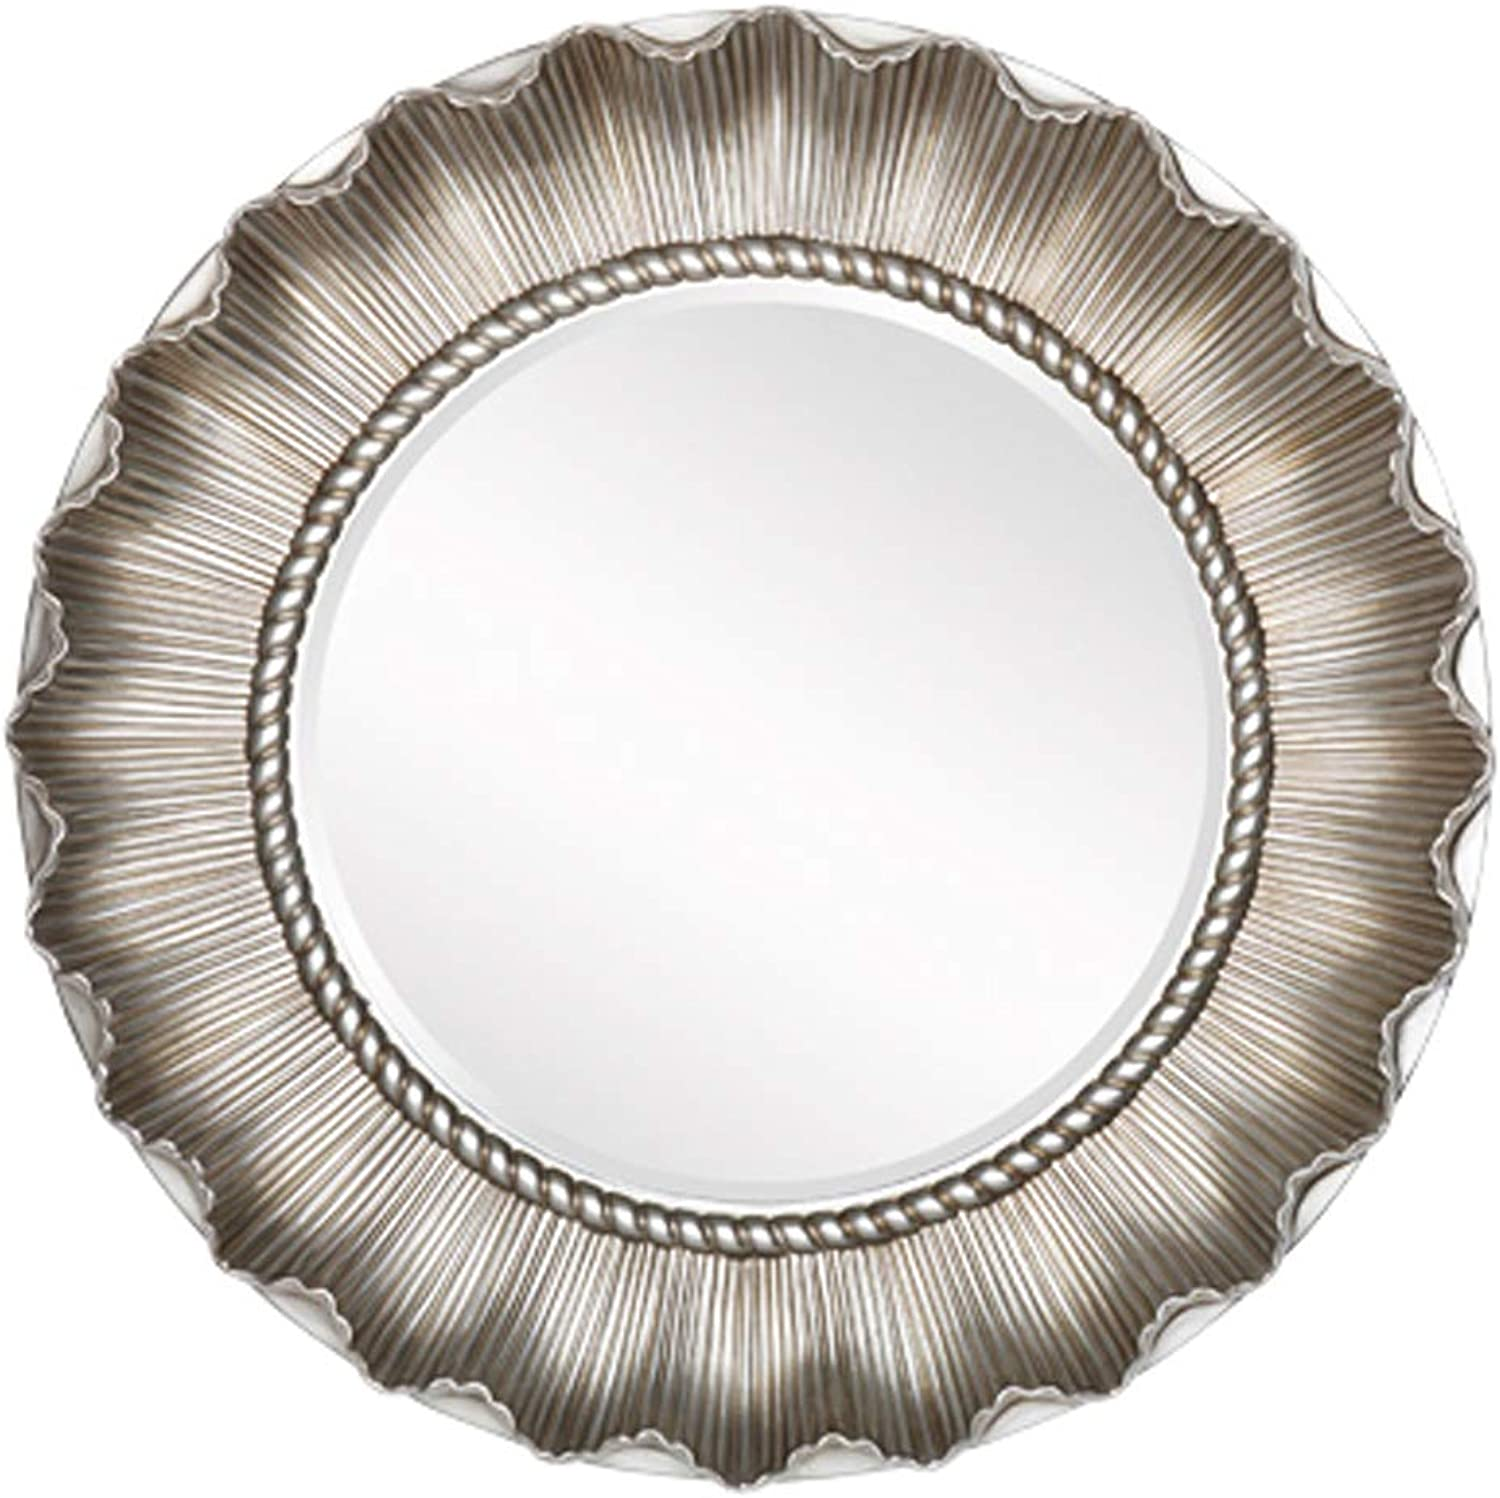 Decorative Mirror Round Silver Vintage Frame 65CM(26Inch) Bathroom Vanity Makeup Art Mirror Entry Diningroom Bedroom Livingroom